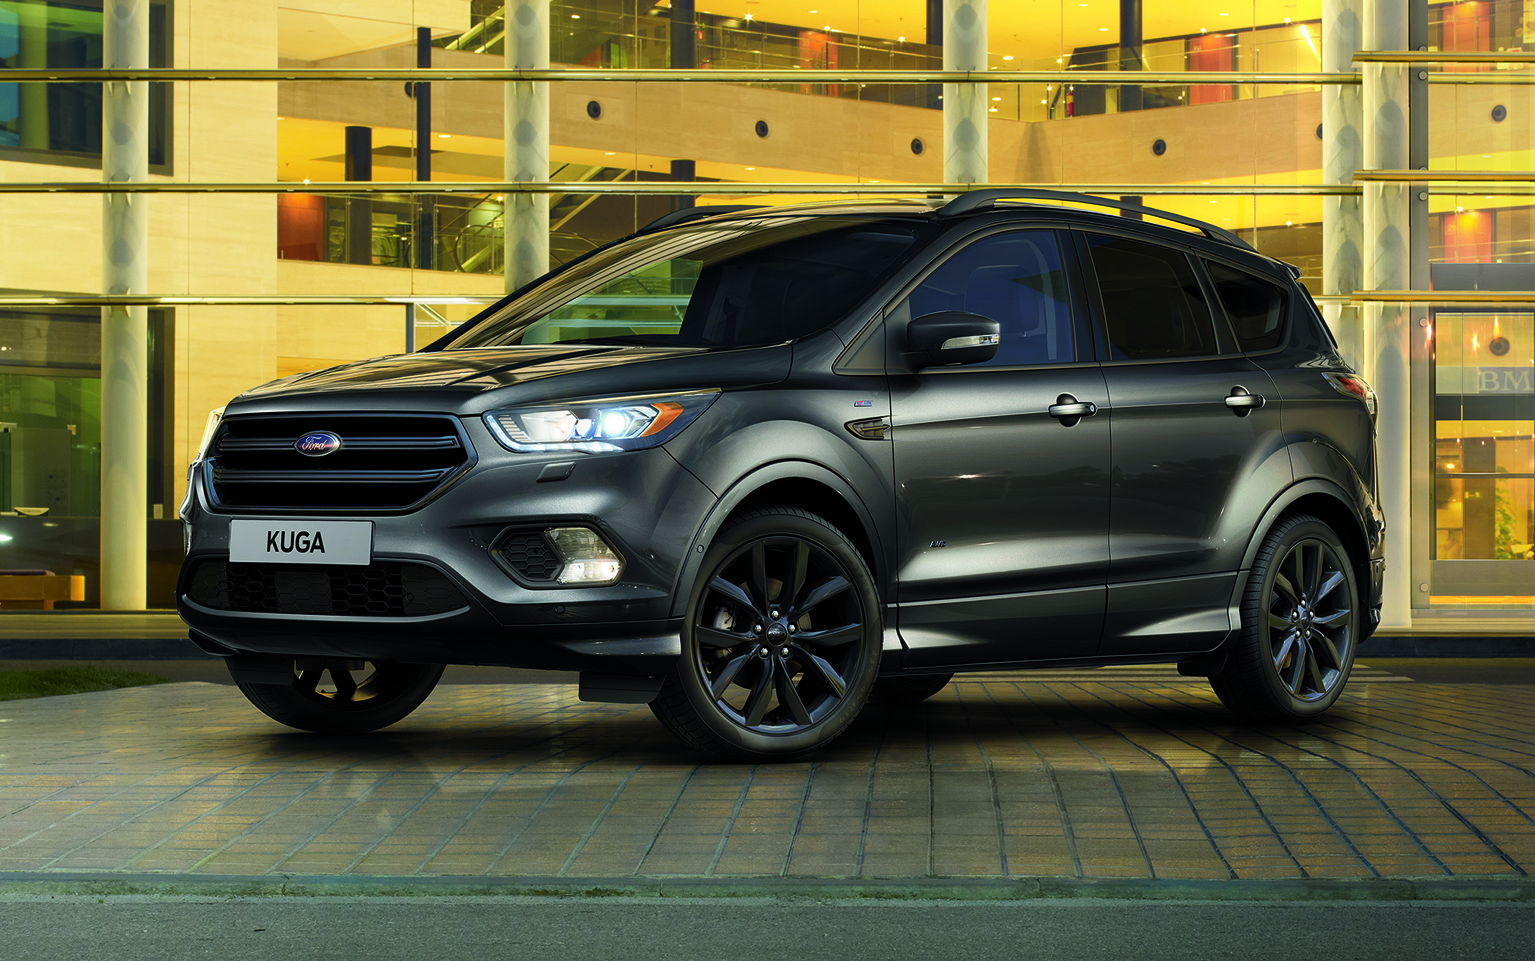 Image Result For Ford Kuga Gr